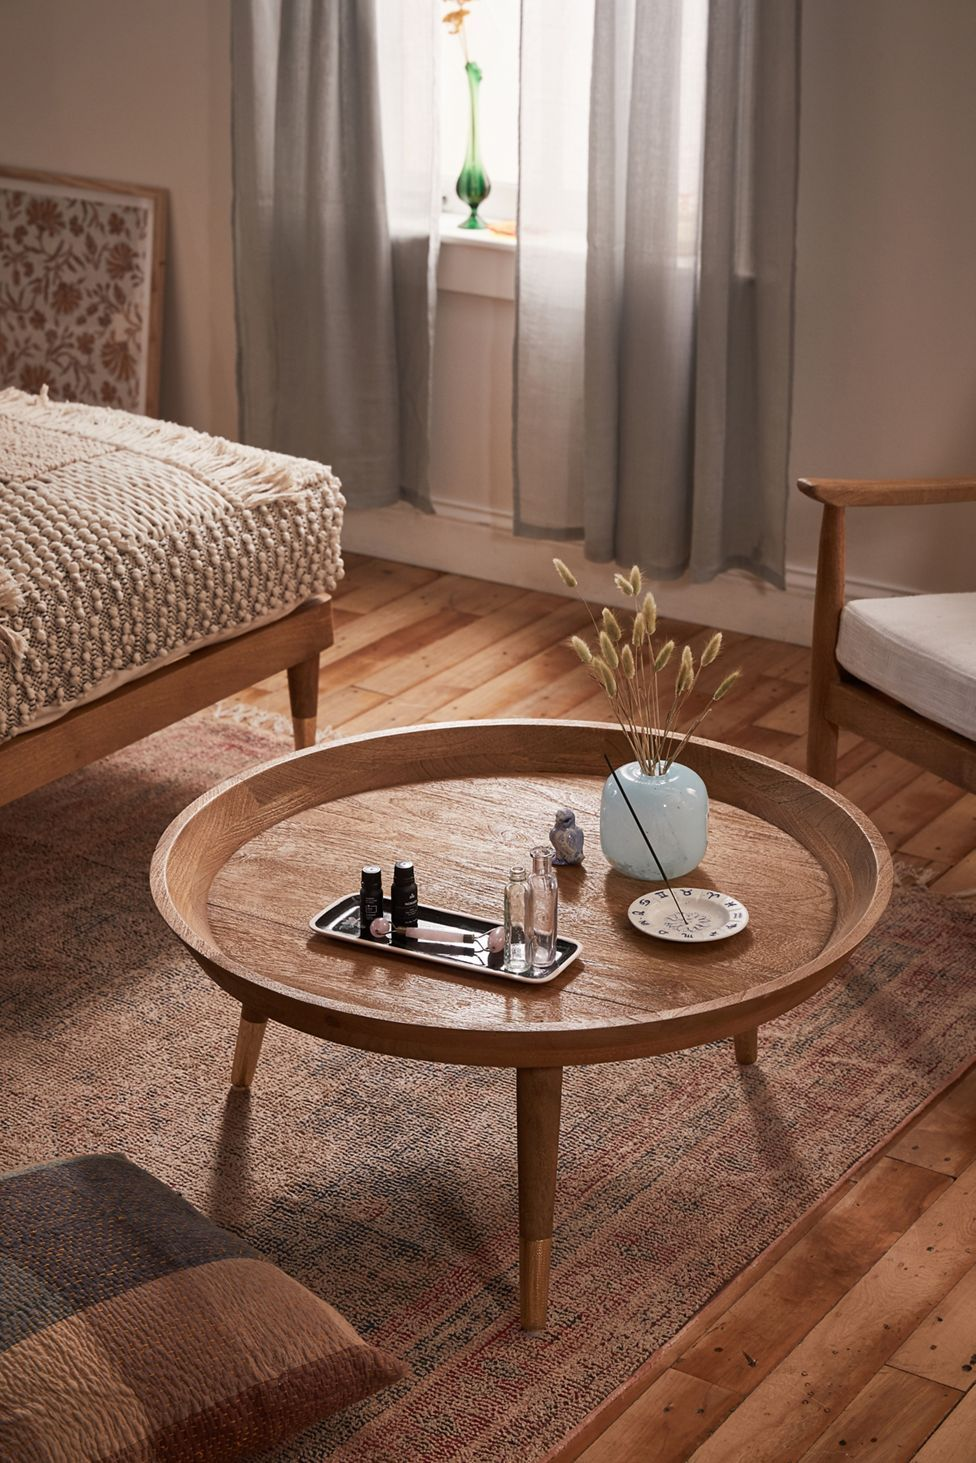 Estelle Coffee Table Urban Outfitters Coffee Table Round Wooden Coffee Table Coffee Table Urban Outfitters [ 1463 x 976 Pixel ]